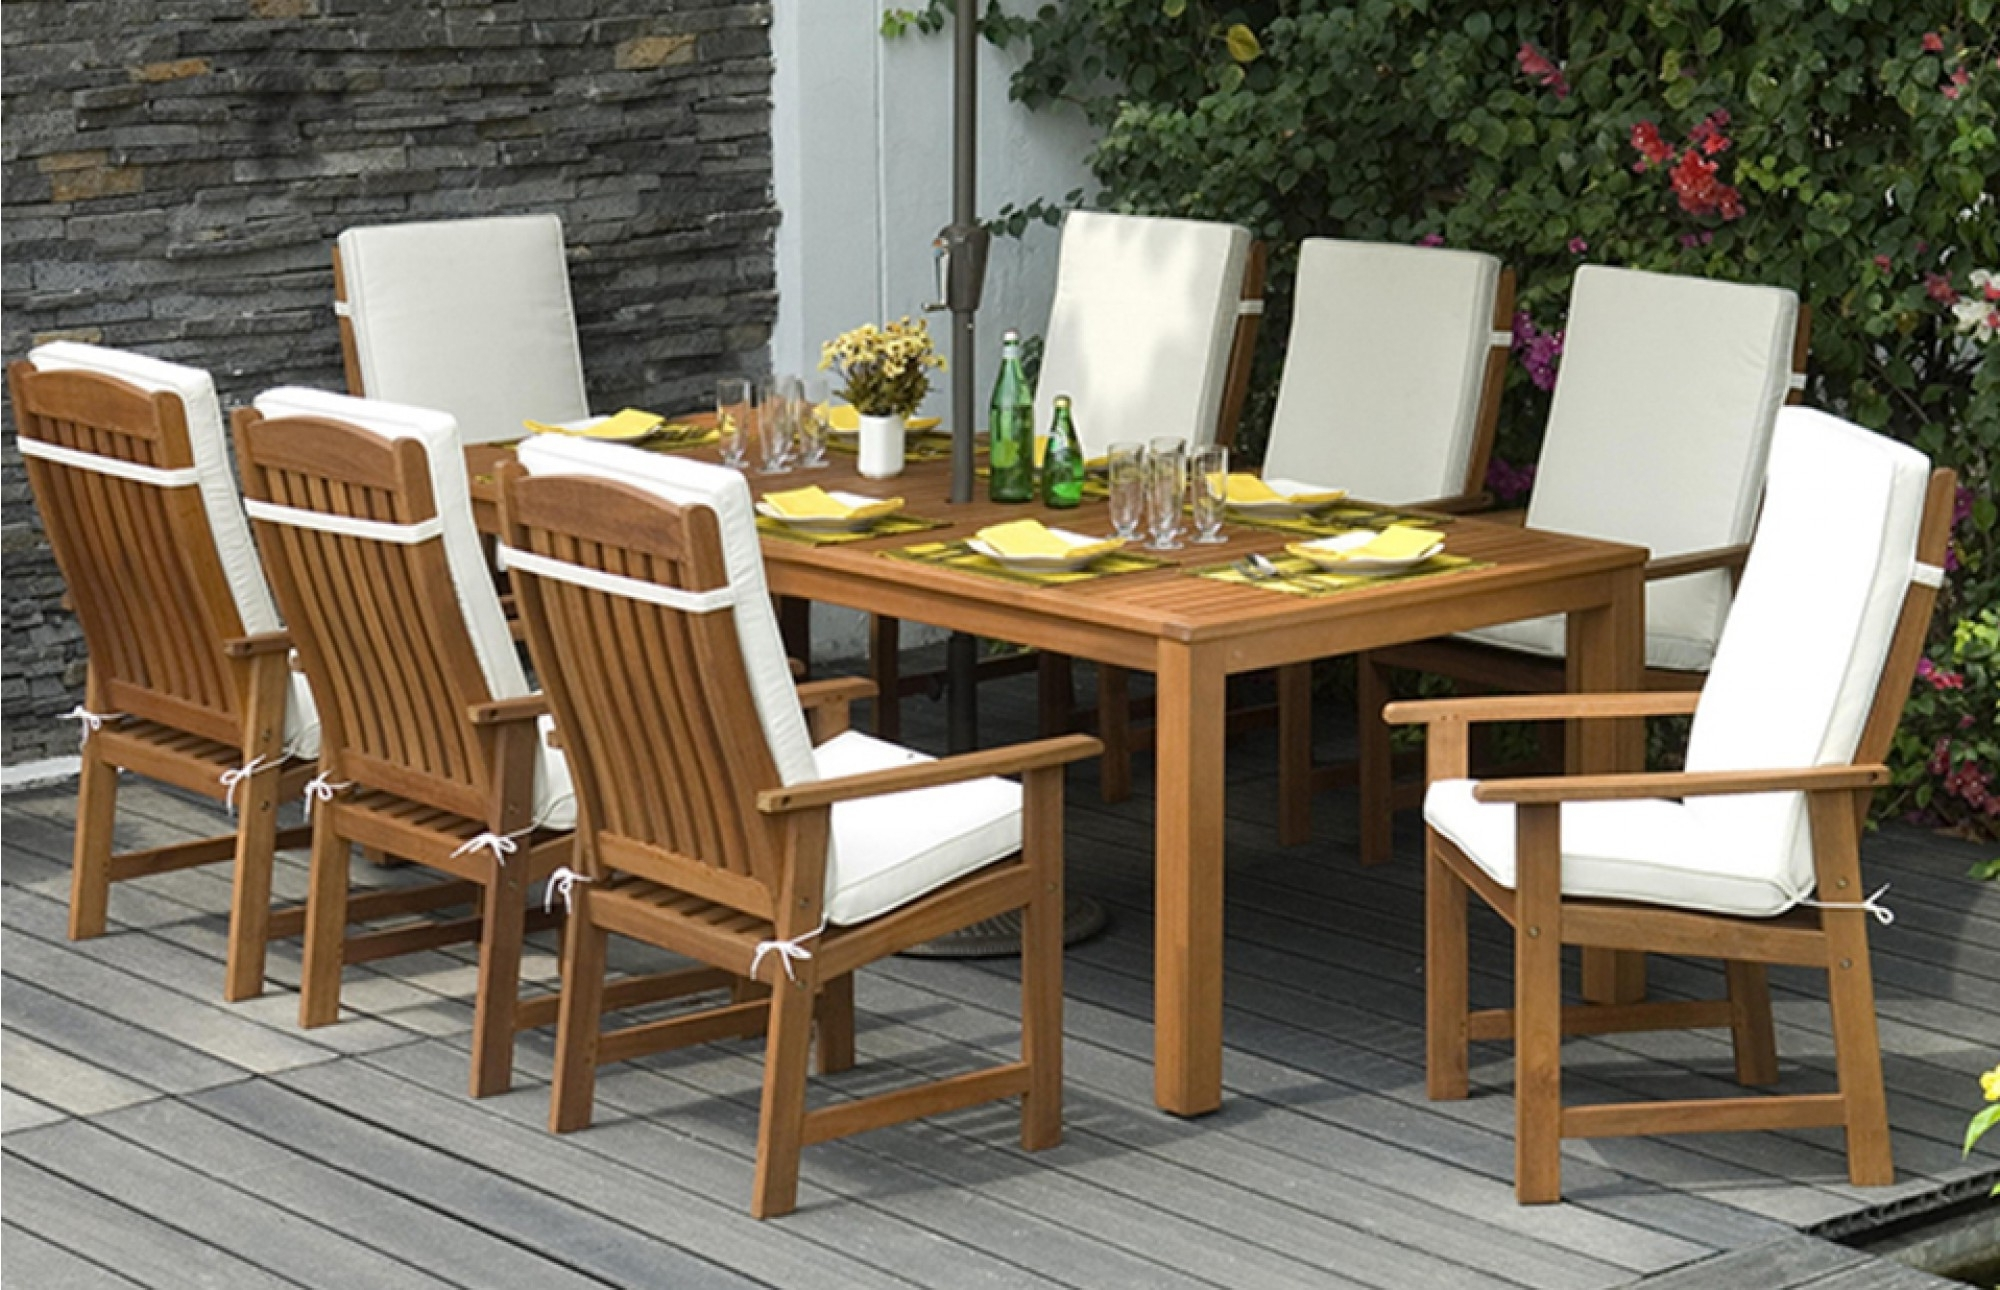 8 Seat Outdoor Dining Tables Regarding Widely Used Patio: Marvellous Wooden Patio Set Outdoor Furniture Wood Types (Gallery 5 of 25)